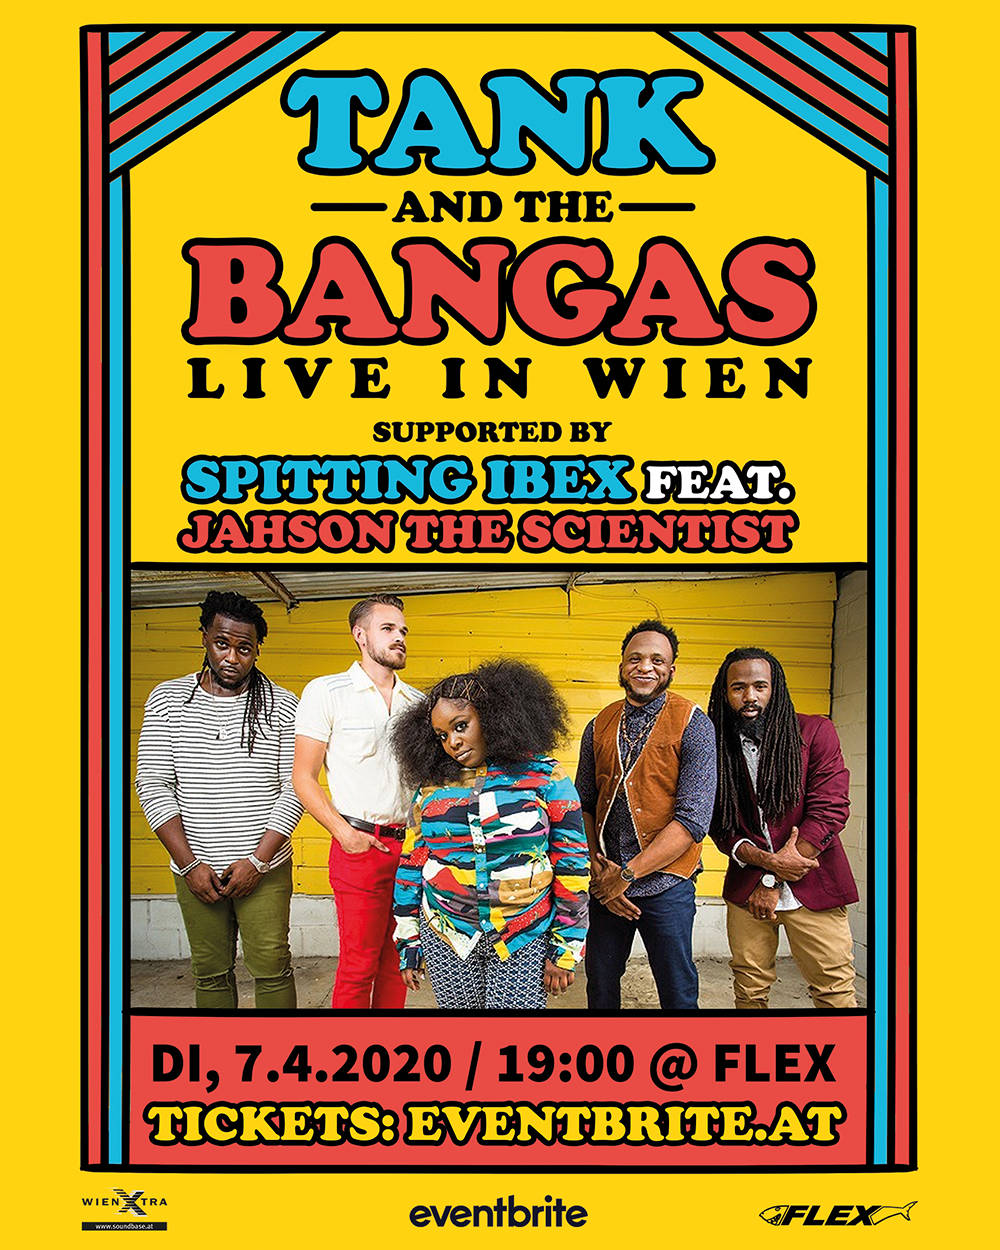 Tank and the Bangas / LIVE in Wien am 7. April 2020 @ Flex.